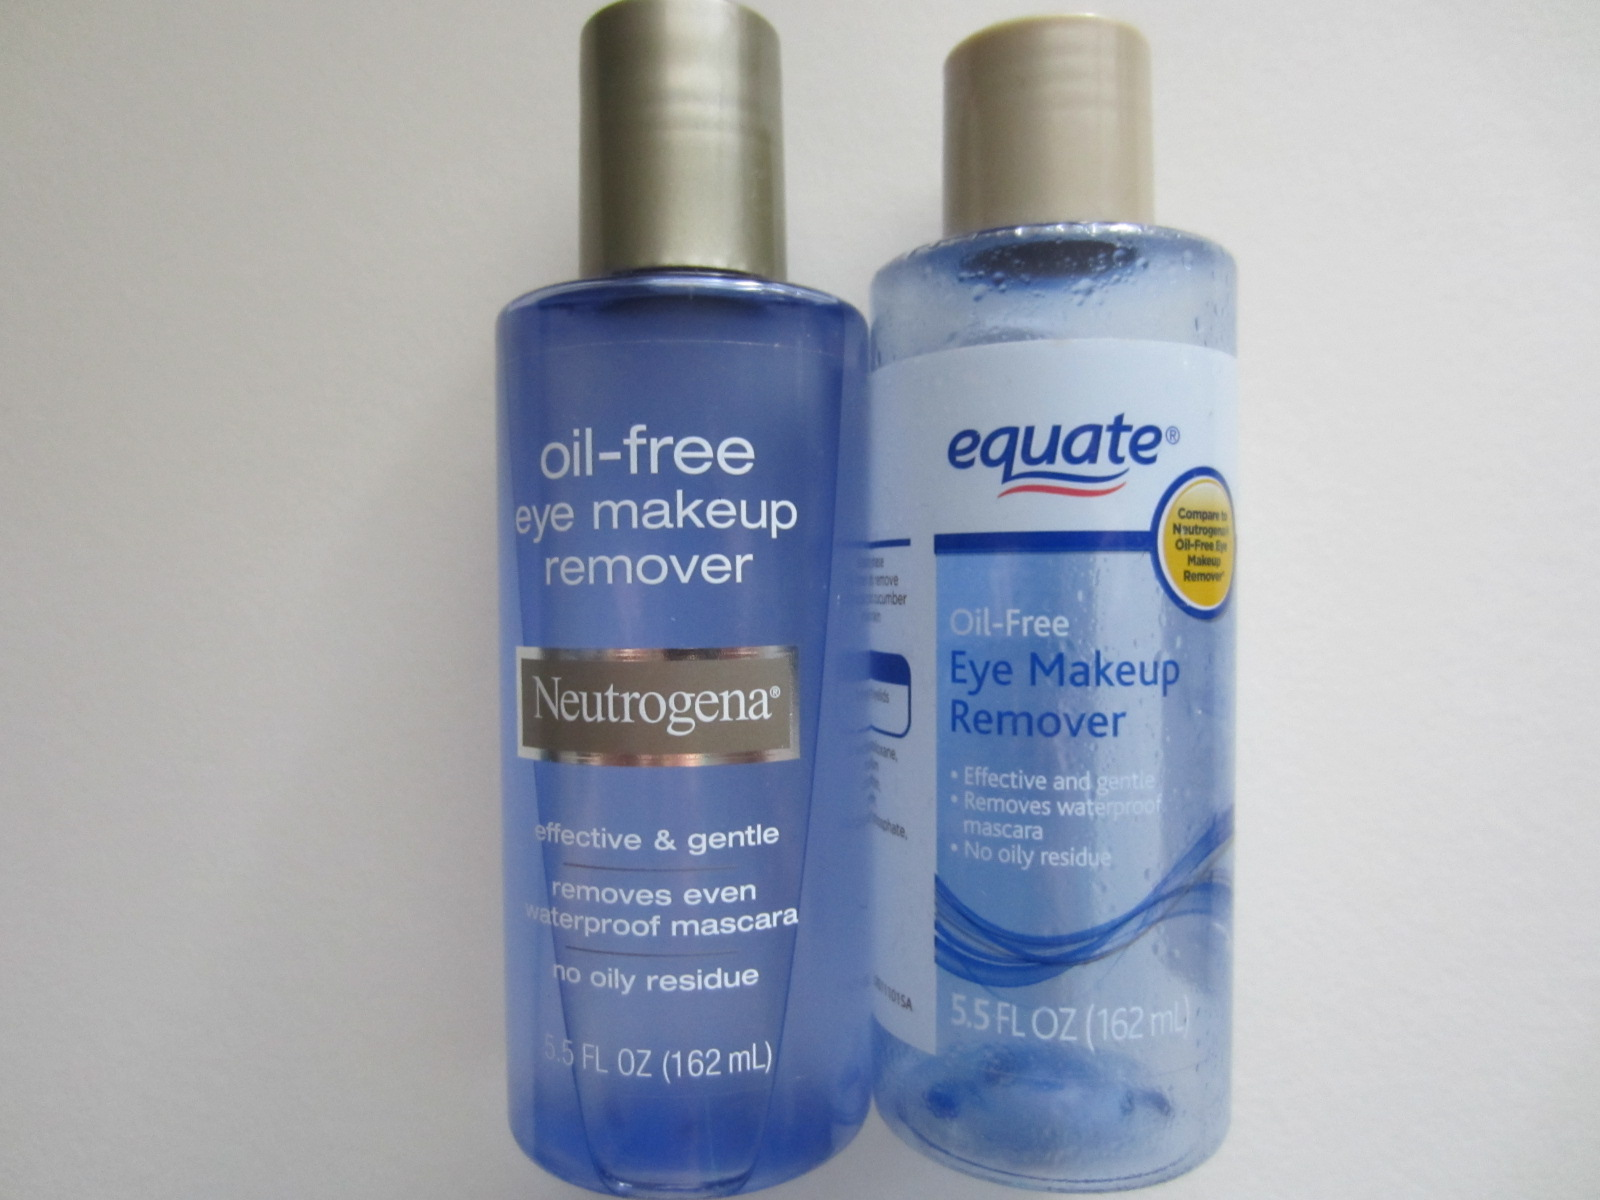 Fashion Makeup And More Whos Better Equate Vs Neutrogena Oil